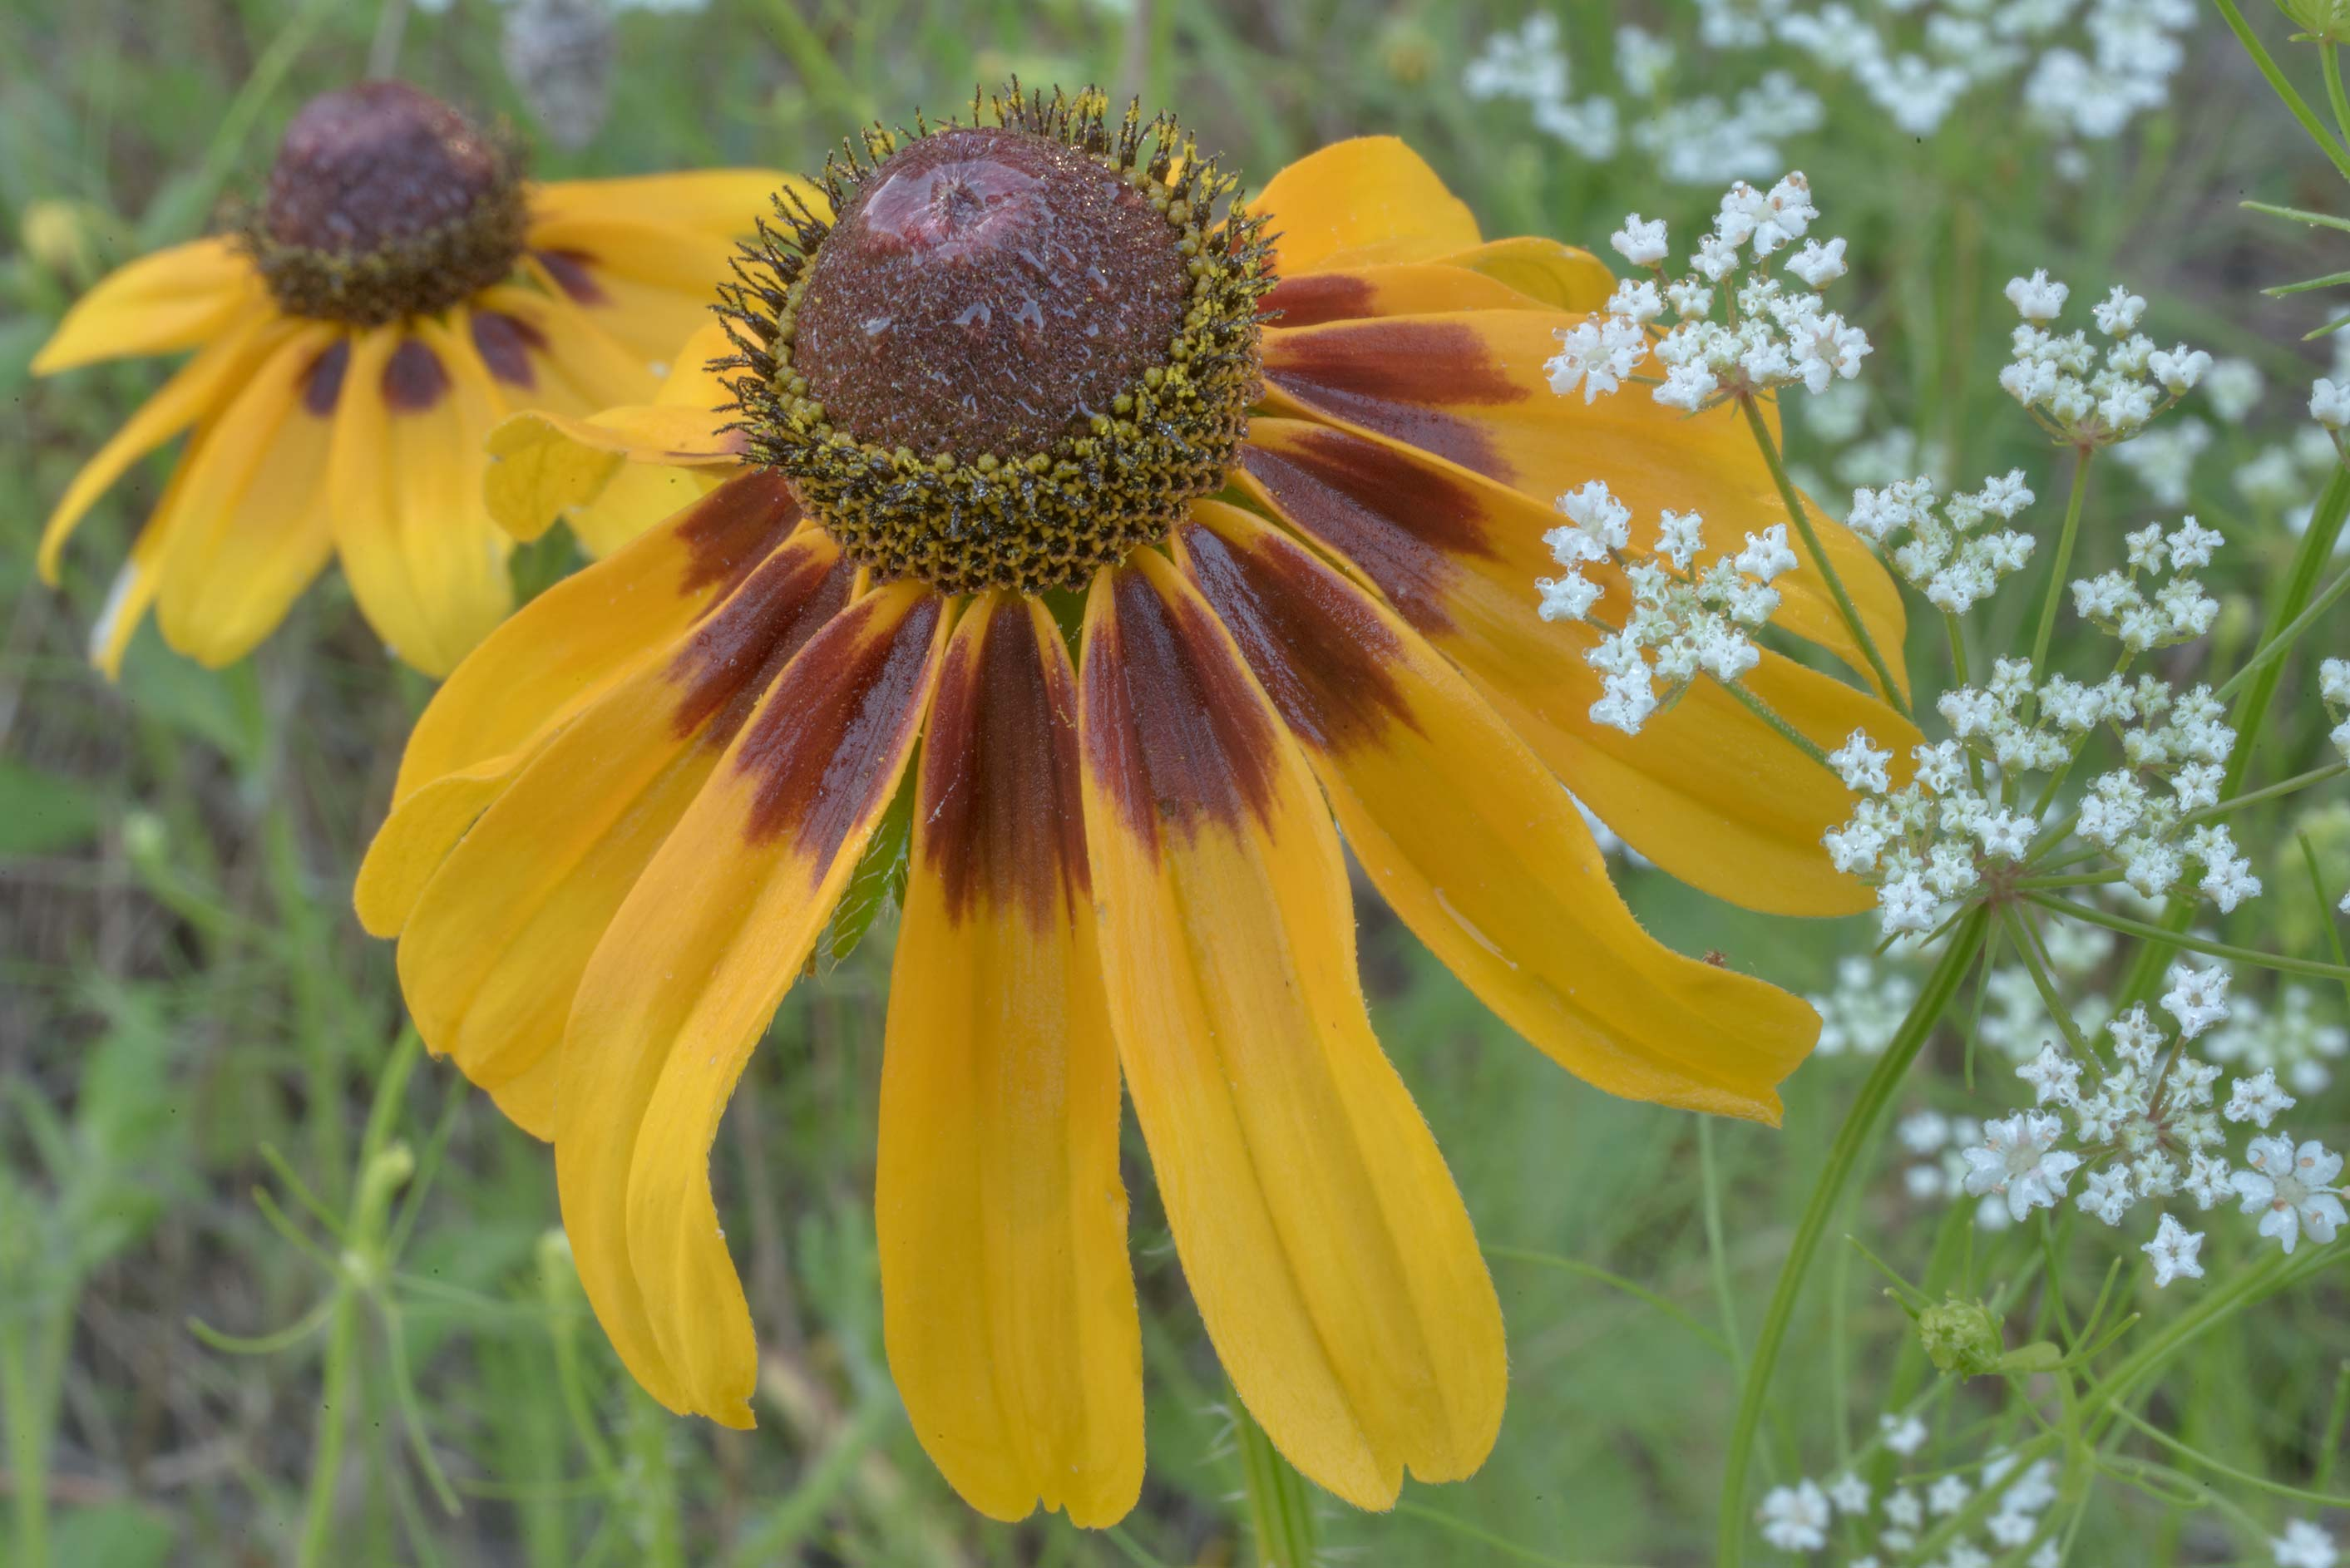 Black eyed susan and mock bishop's weed in Lick Creek Park. College Station, Texas